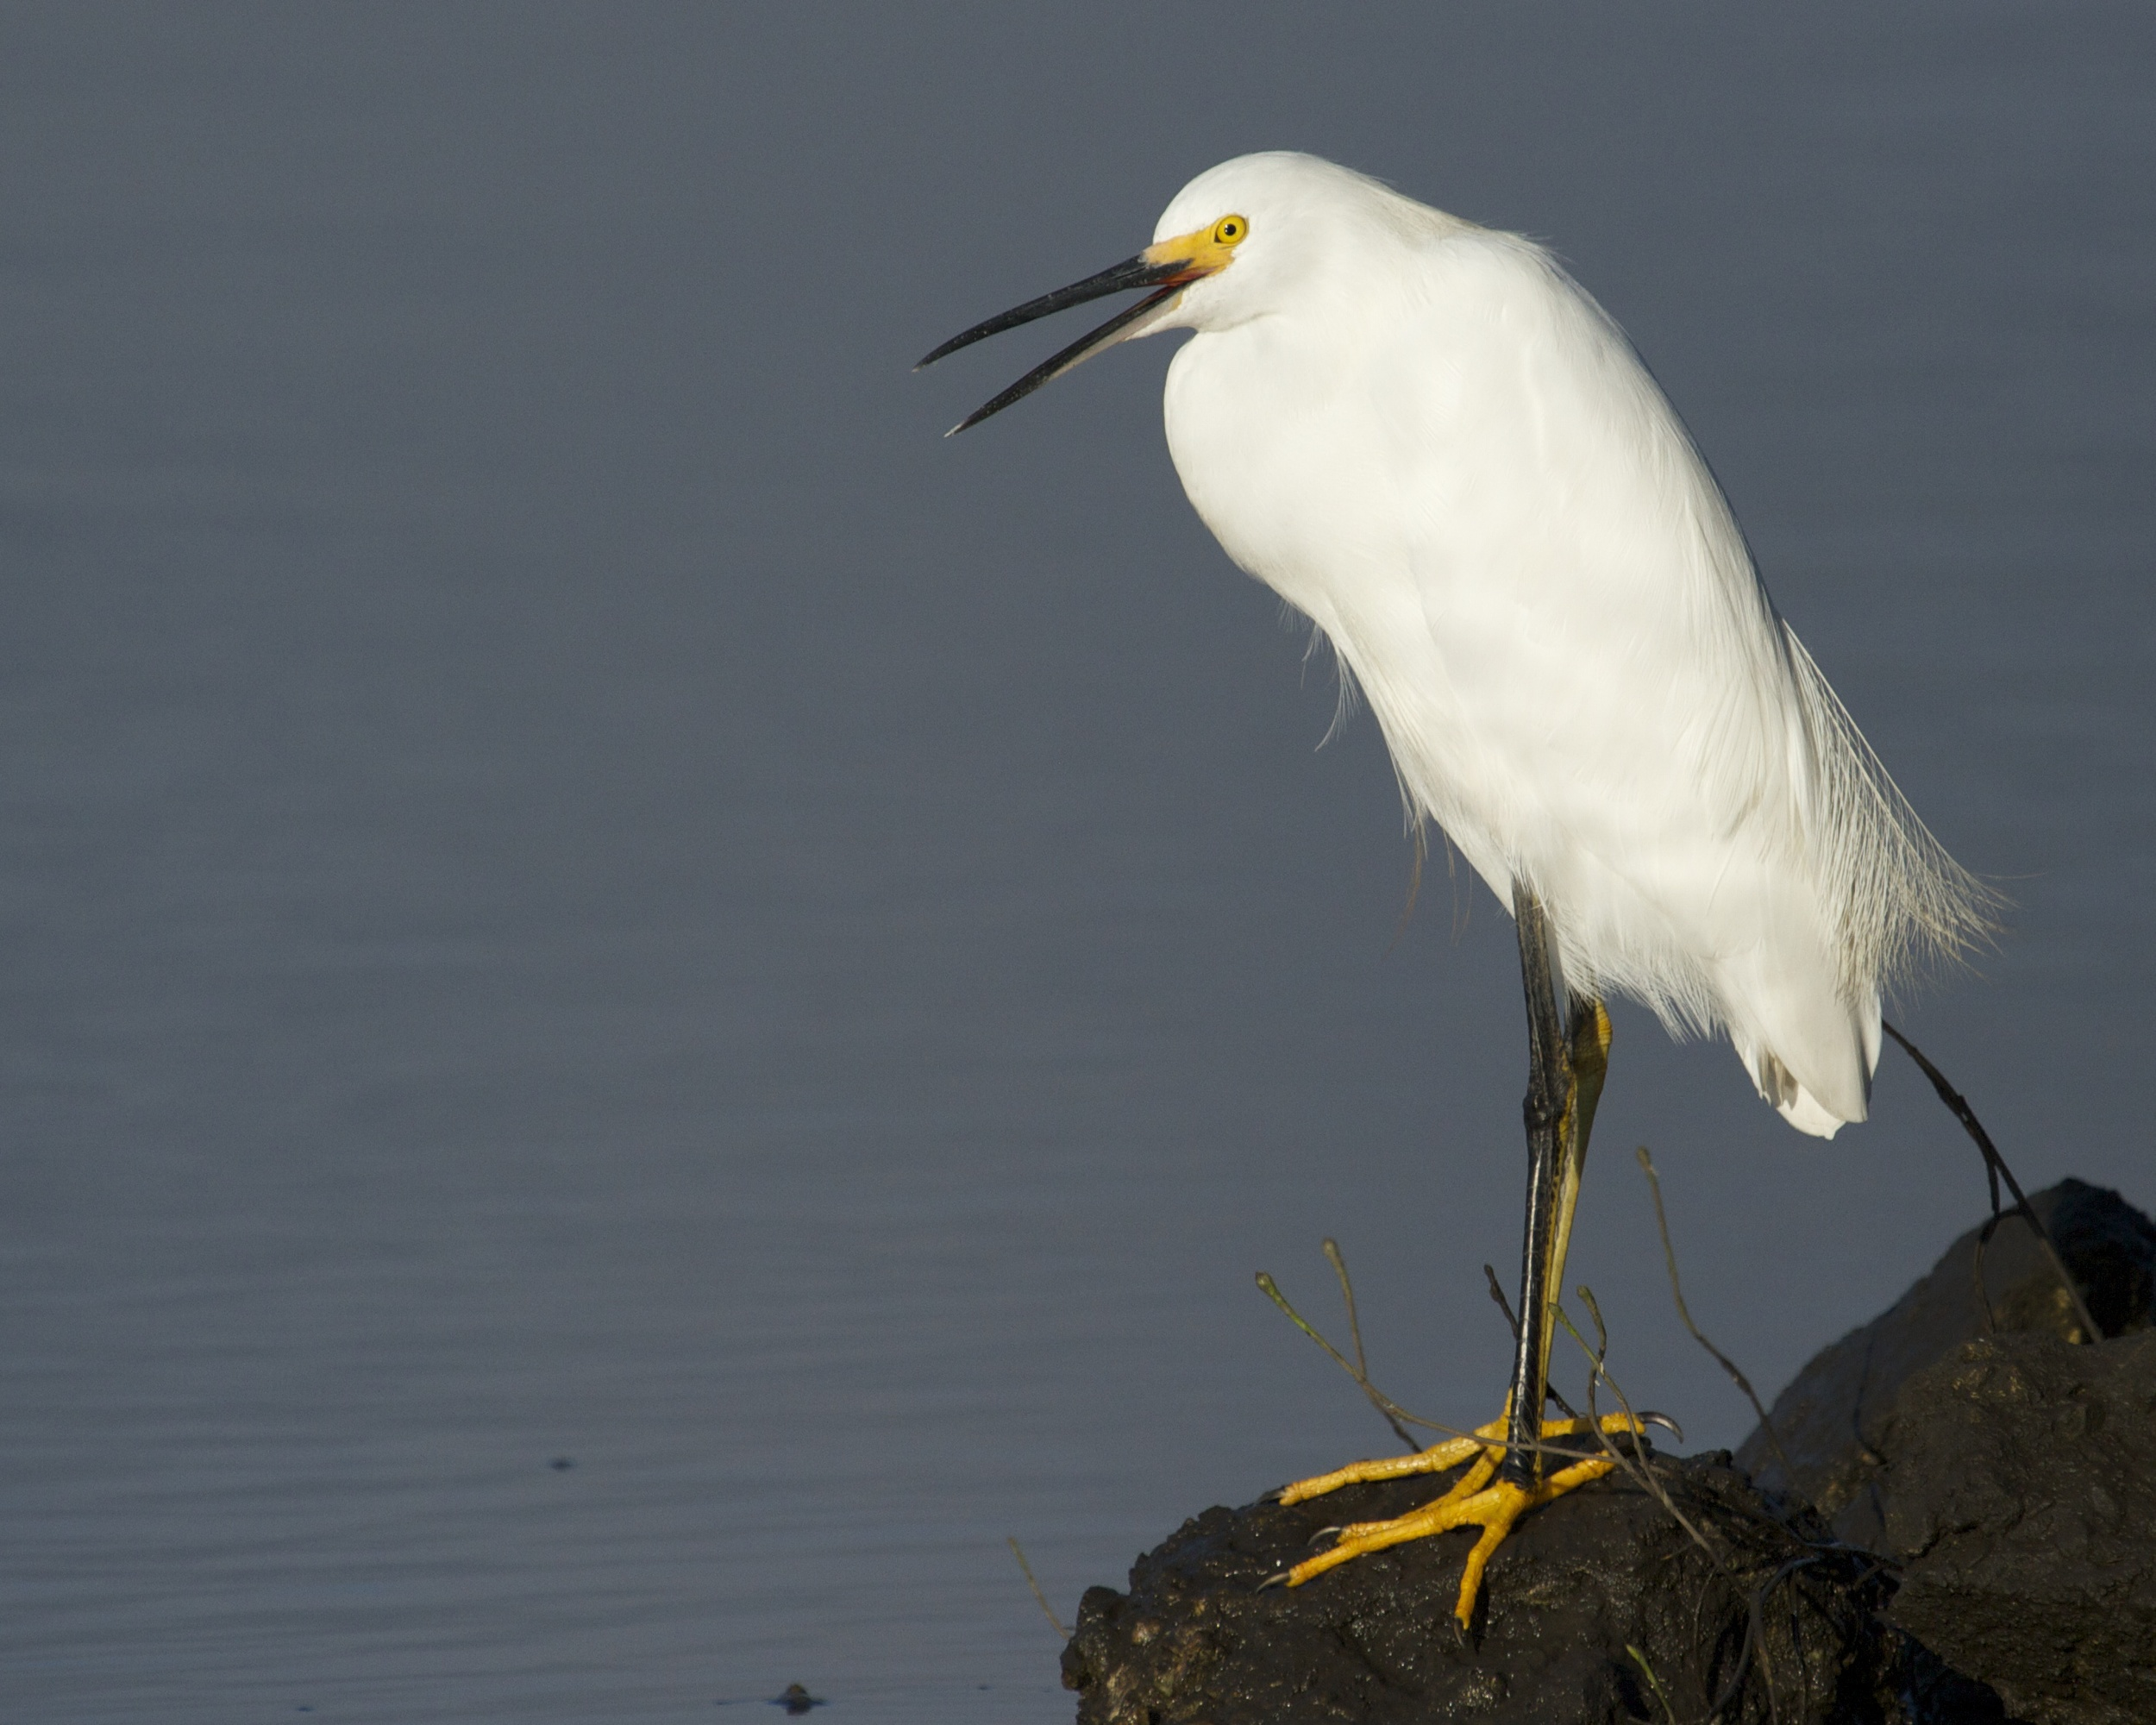 Don't scare the fish quips the Snowy Egret! And get that doohickey outta here..